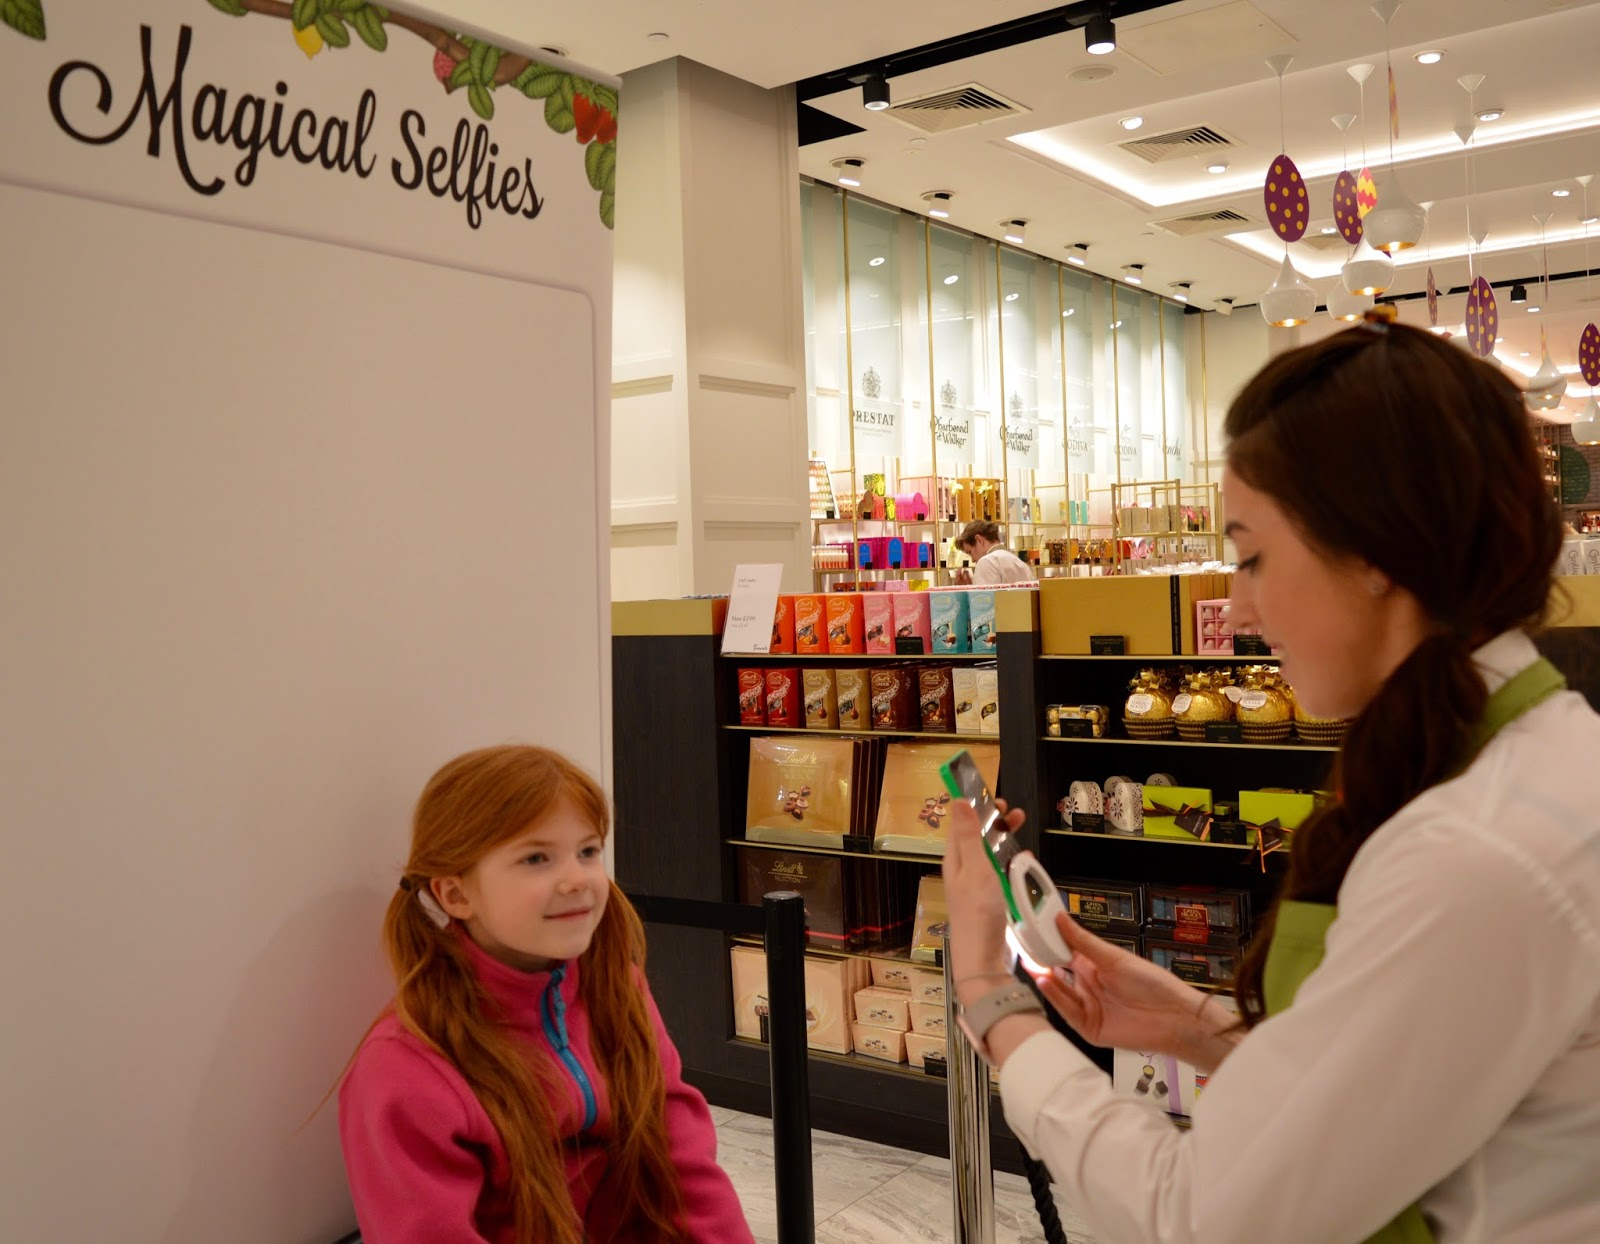 Create Magic Sweet Selfies with Katjes Magic Candy Factory at Fenwick Newcastle this Easter - selfie chair